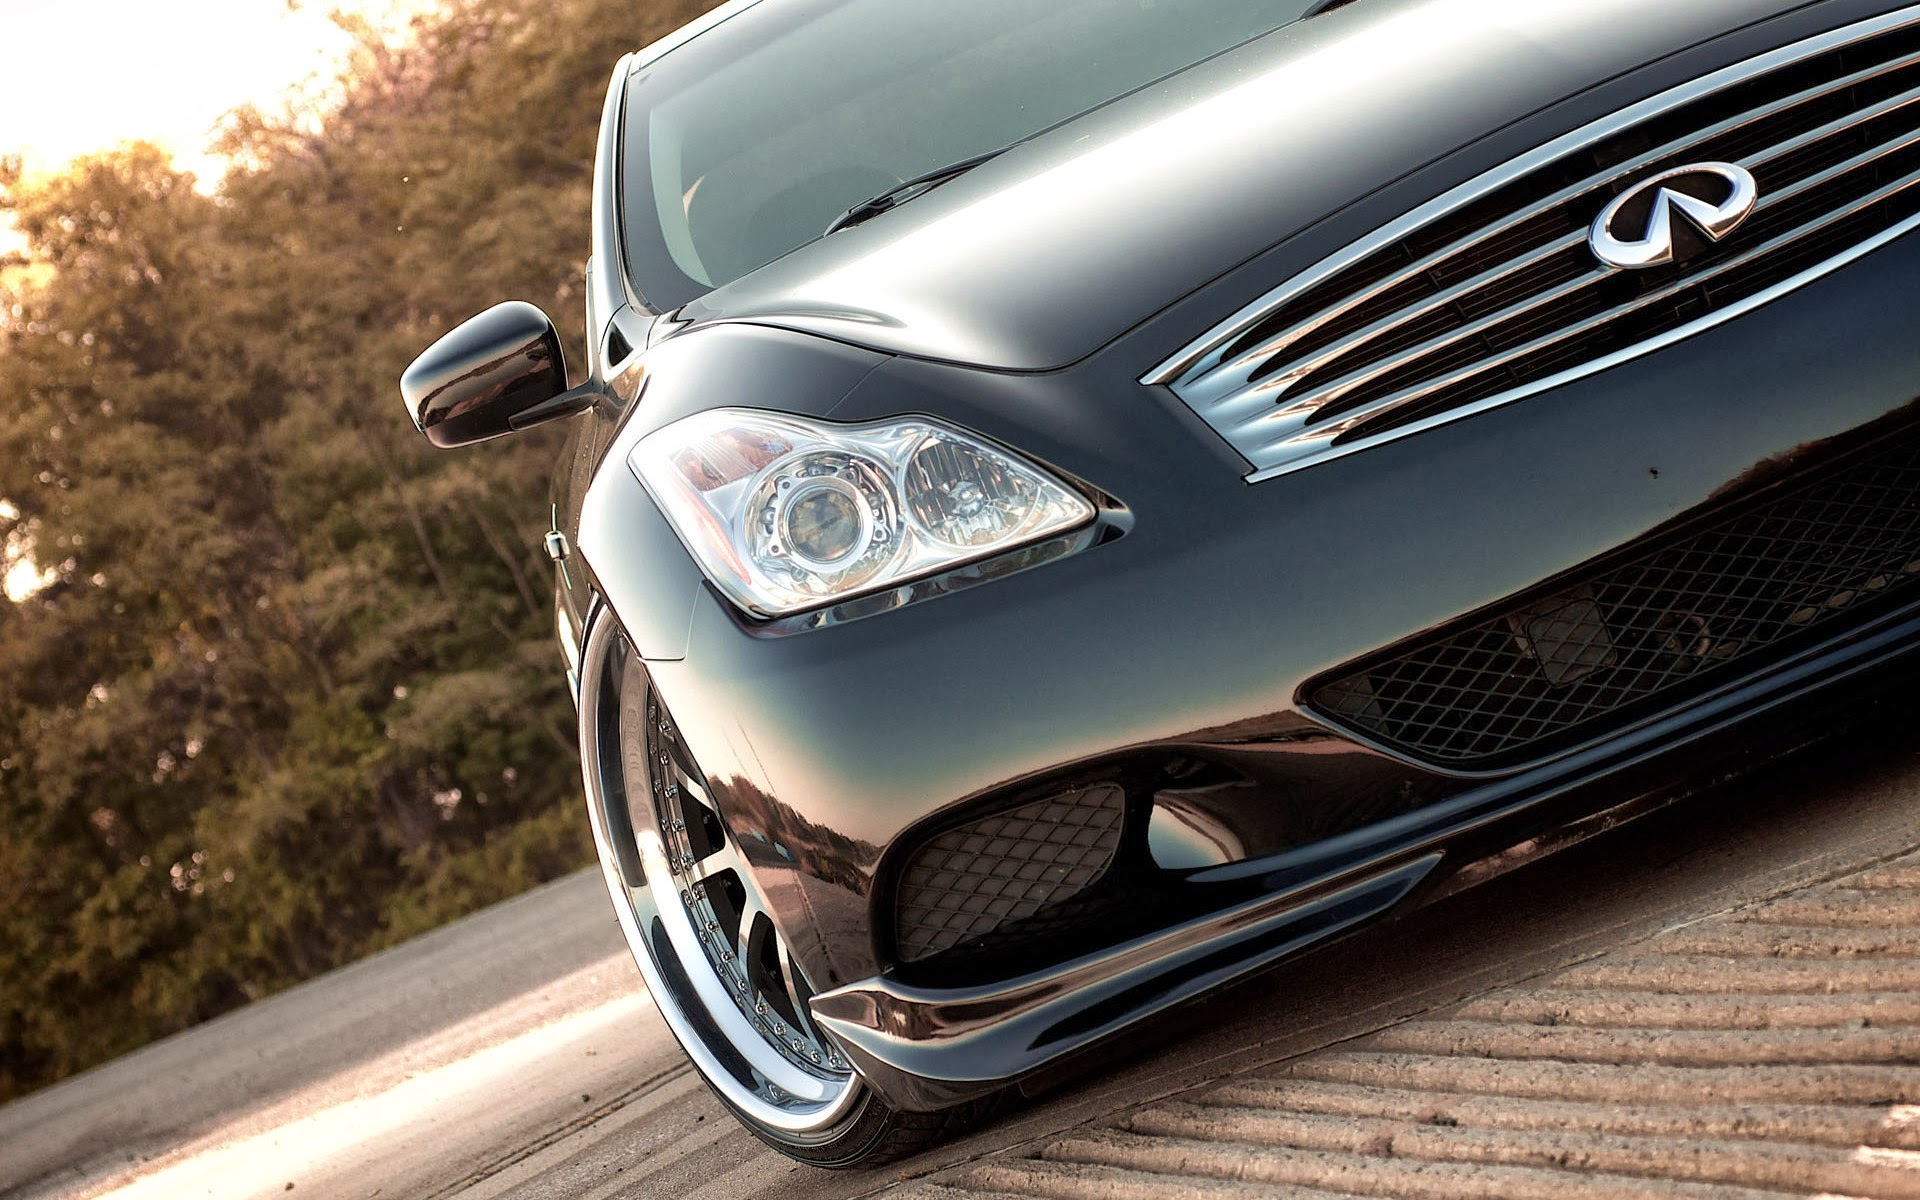 2011 <b>Infiniti G37 tuning</b> f <b>wallpaper</b> | 1921x1200 | 112158 ...